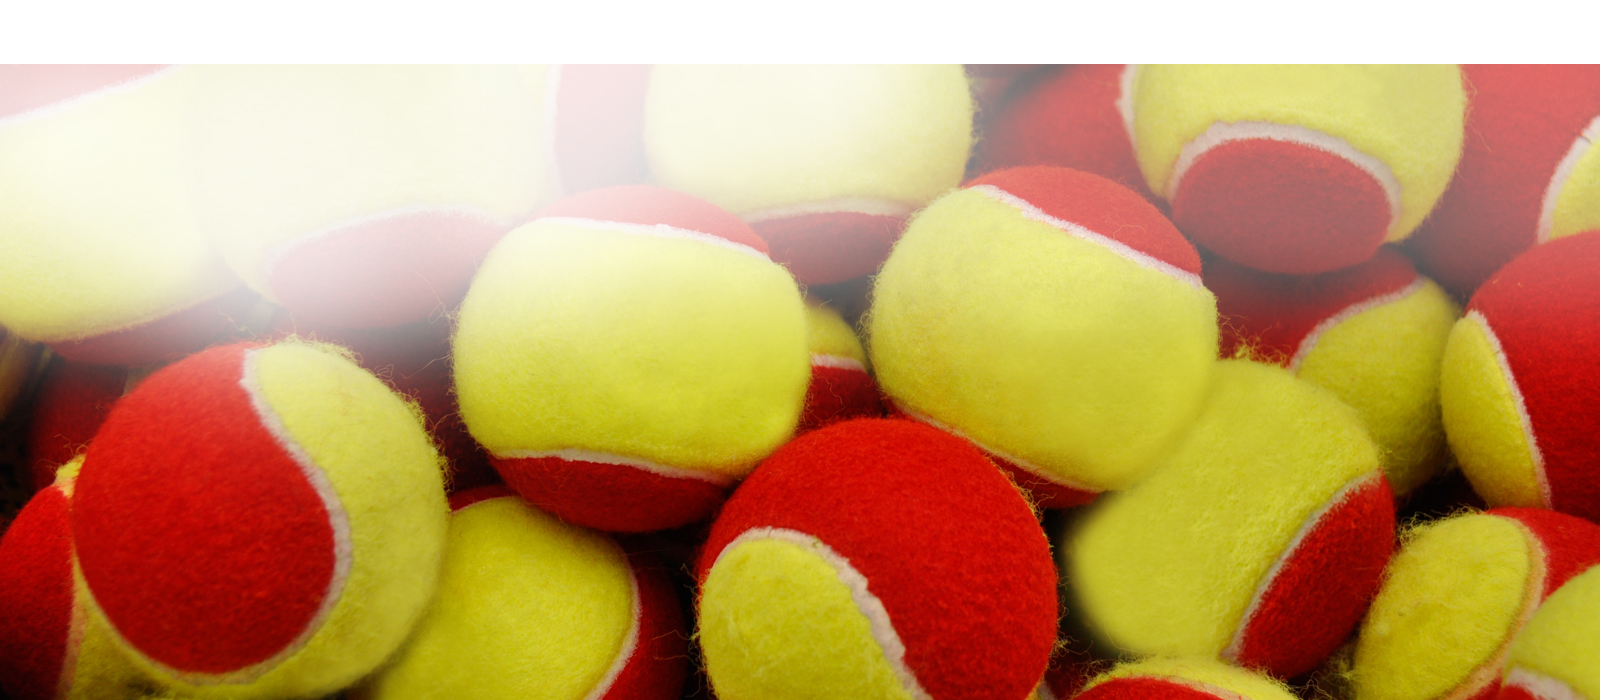 yellow and red tennis balls stacked on top of each other